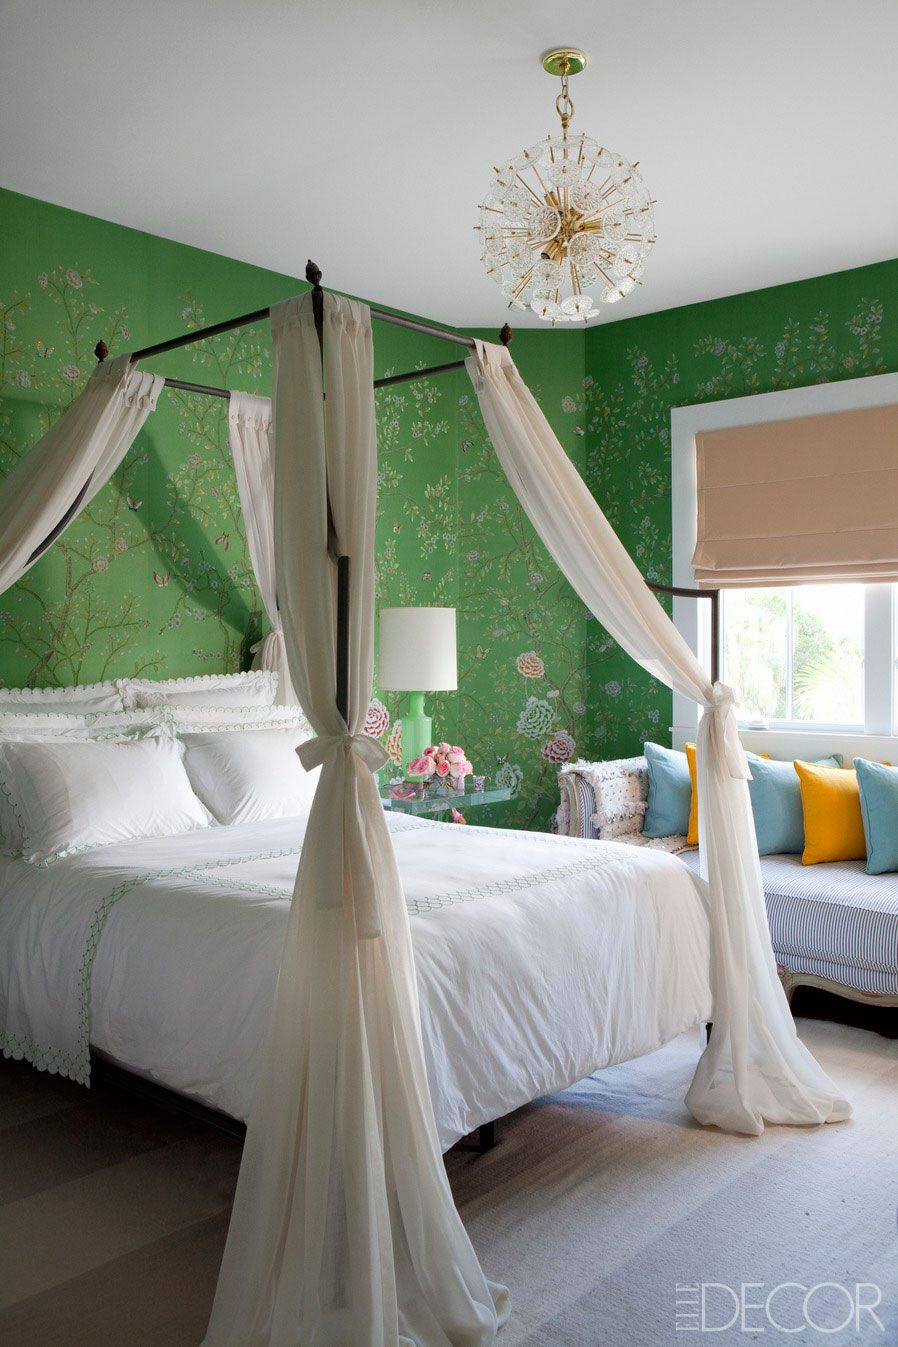 Canopy Bed Design 25 canopy bed ideas - modern canopy beds and frames